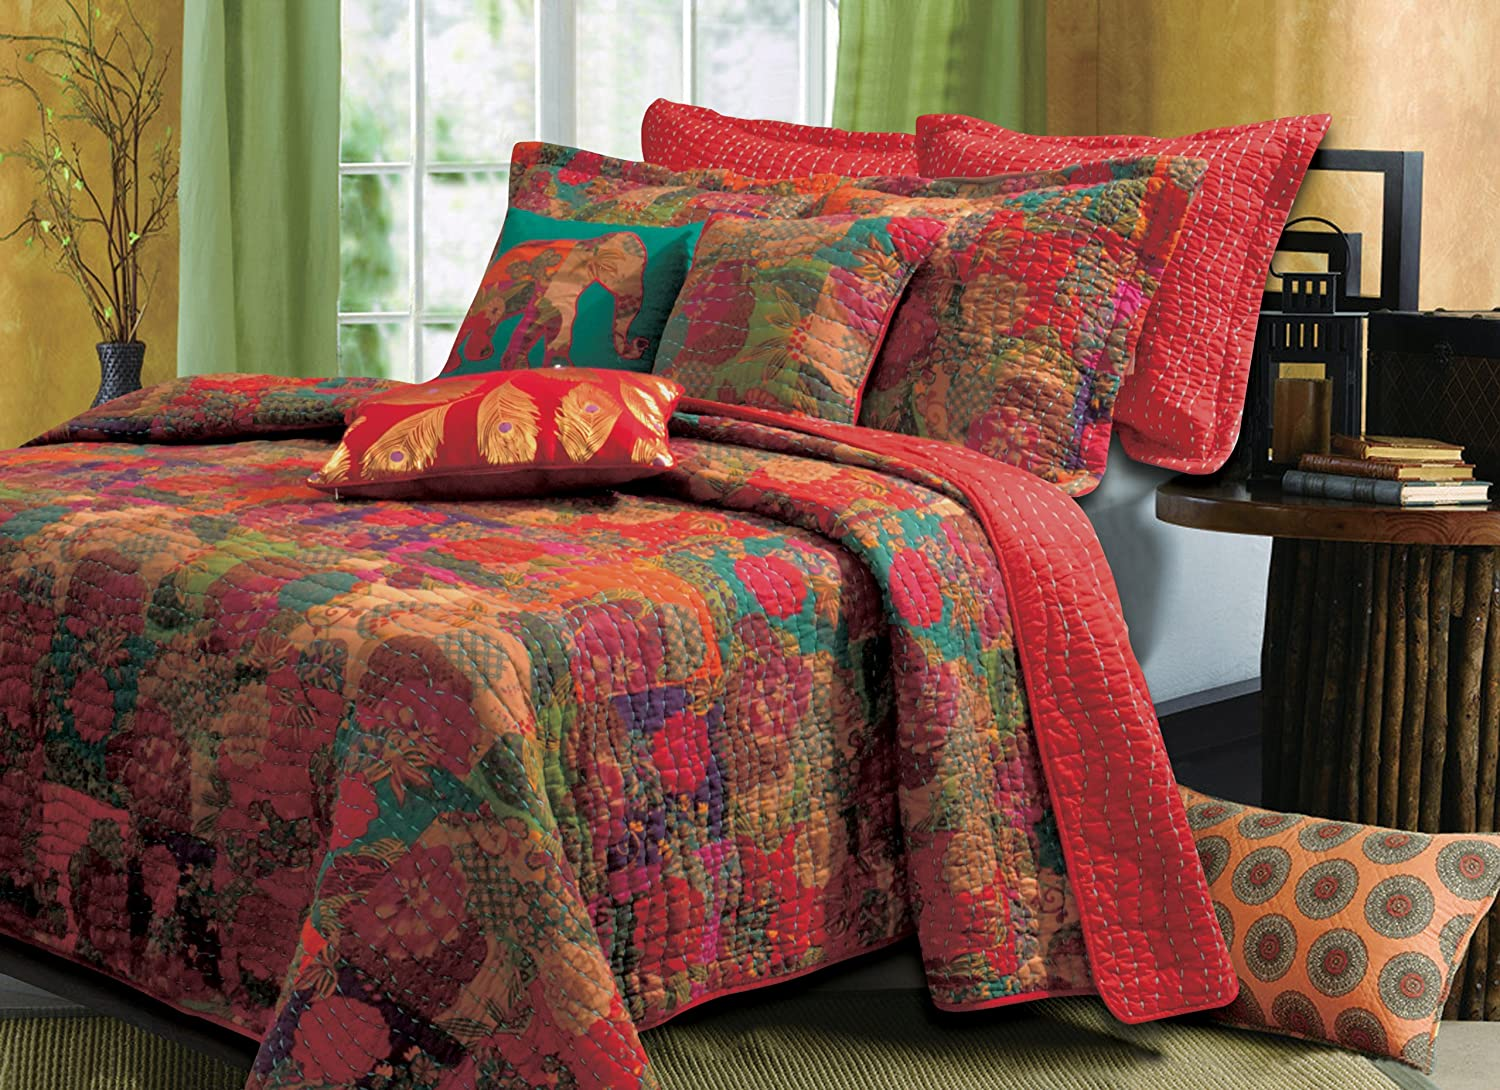 Greenland Home 5-Piece Jewel Bonus Quilt Set, Full/Queen